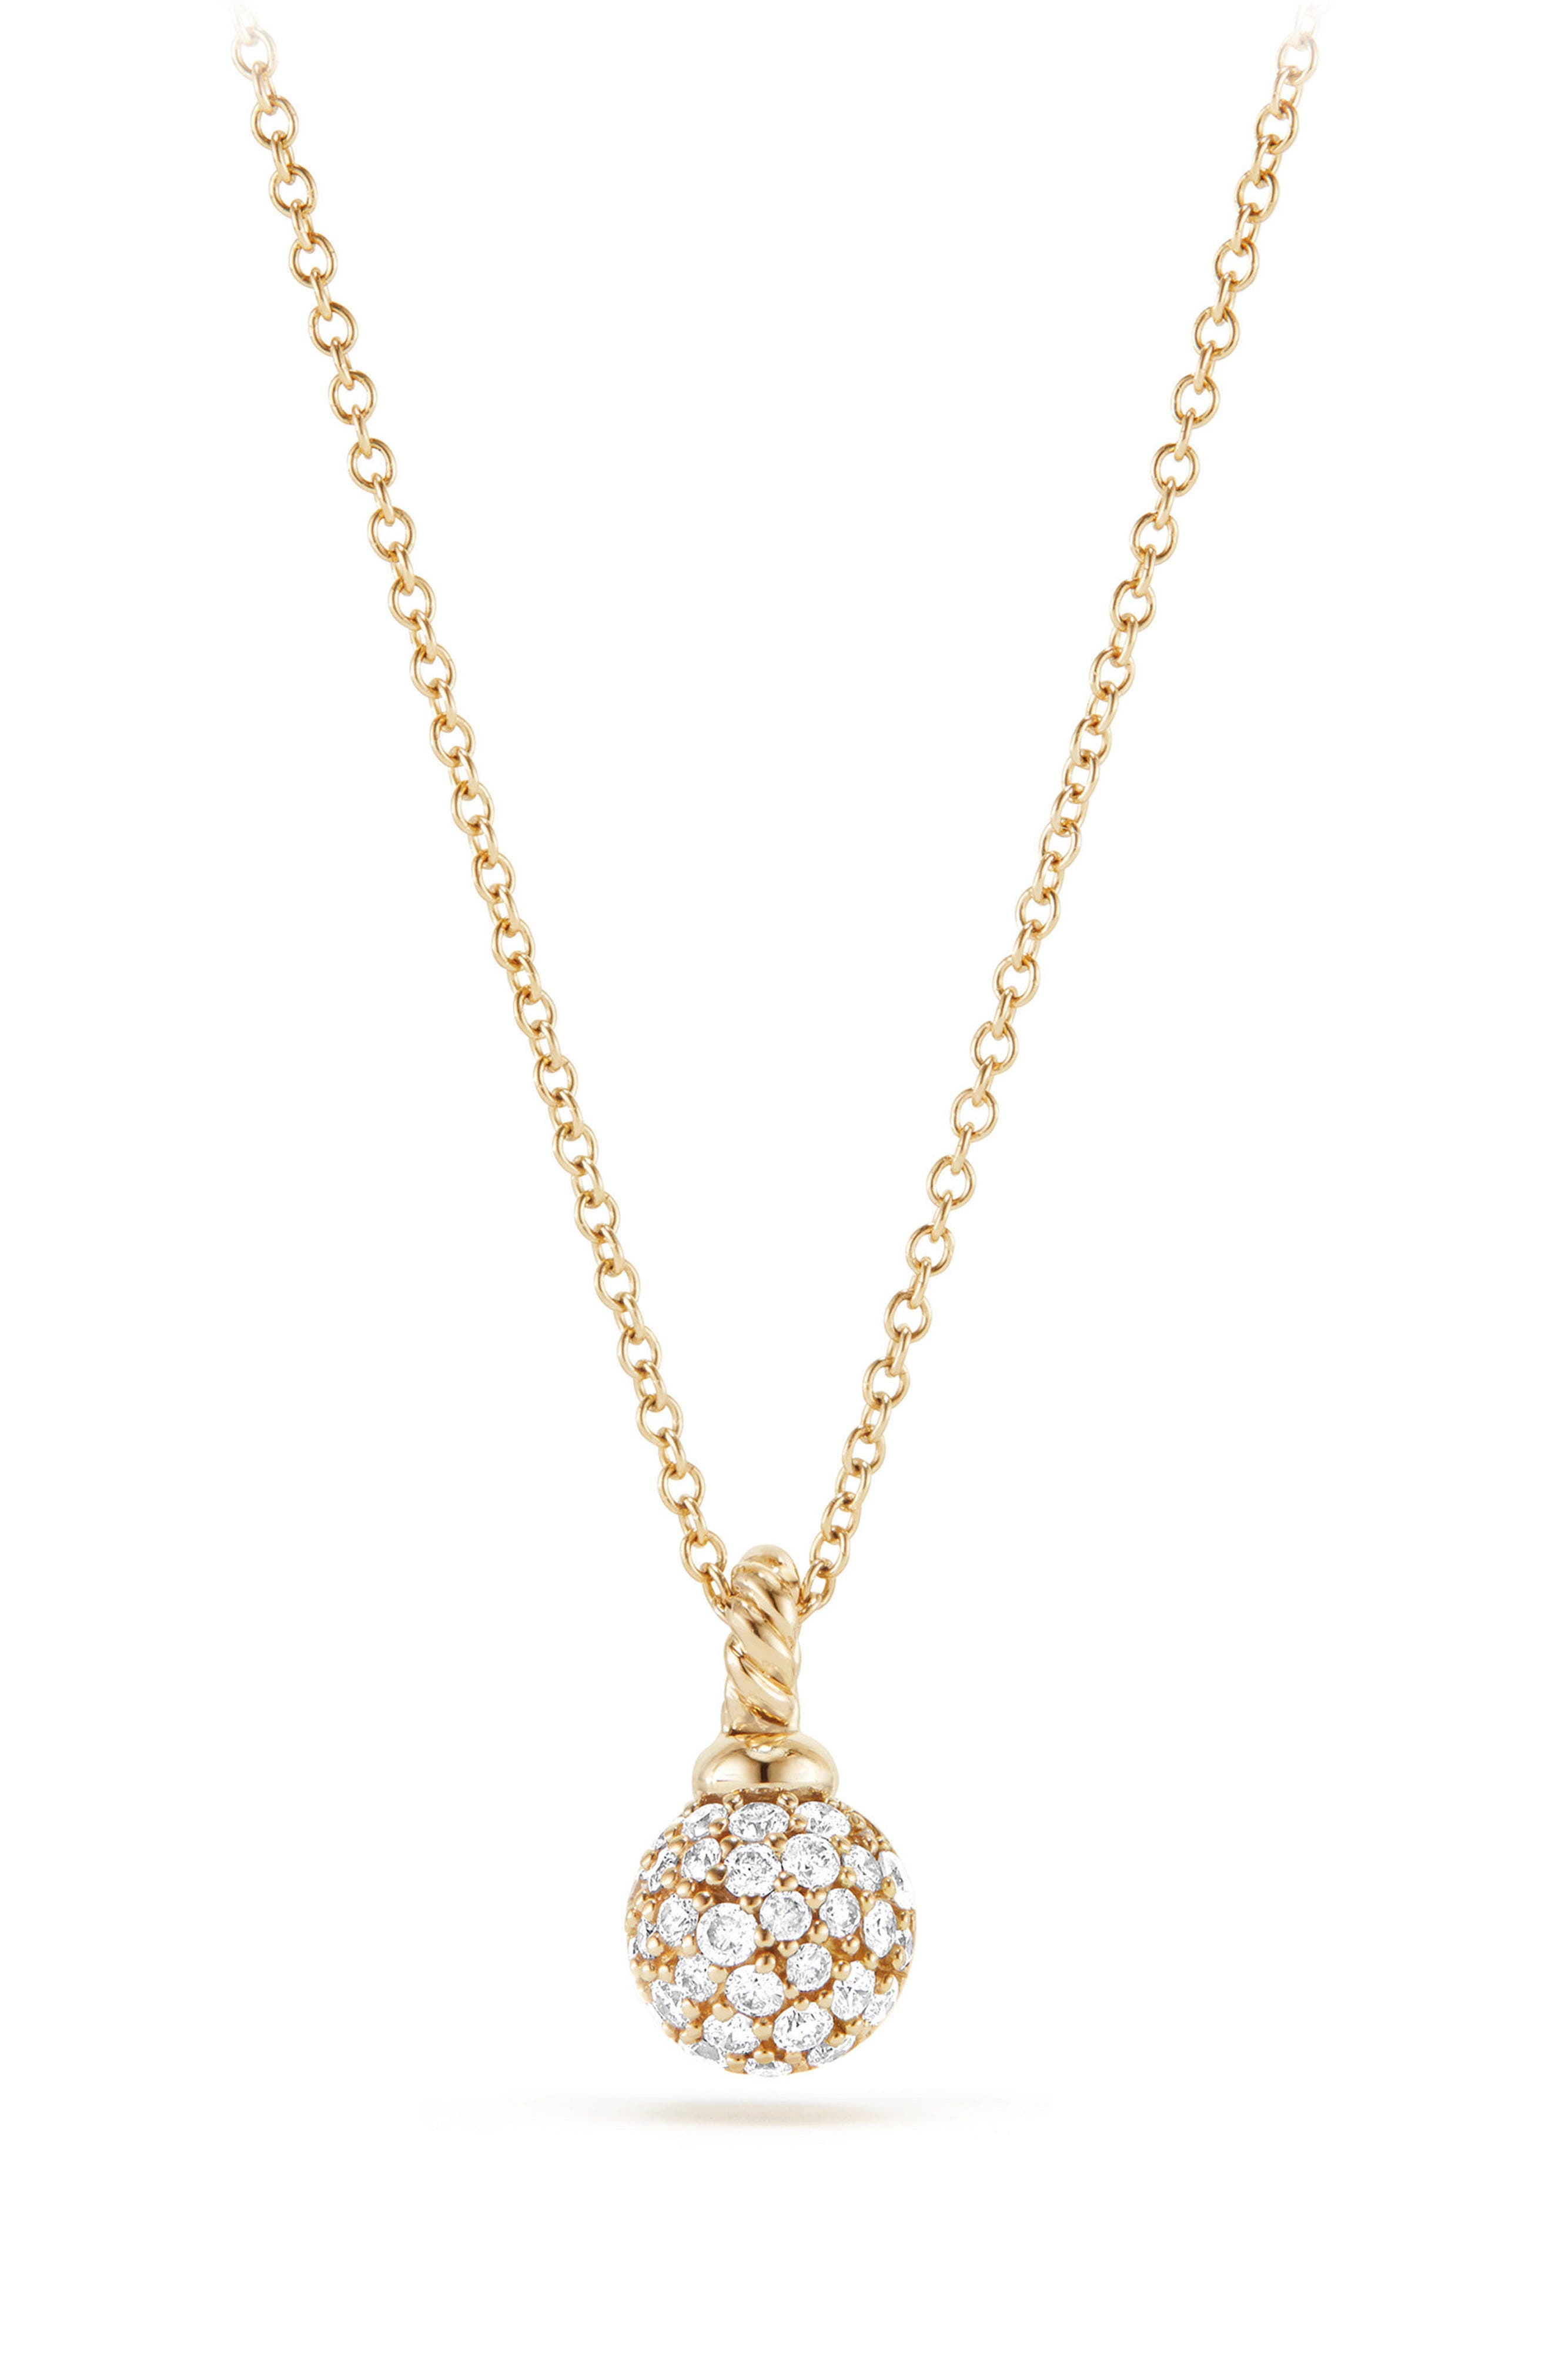 Petite Solari Pavé Necklace with Diamonds in 18K Gold,                             Main thumbnail 1, color,                             YELLOW GOLD/ DIAMOND